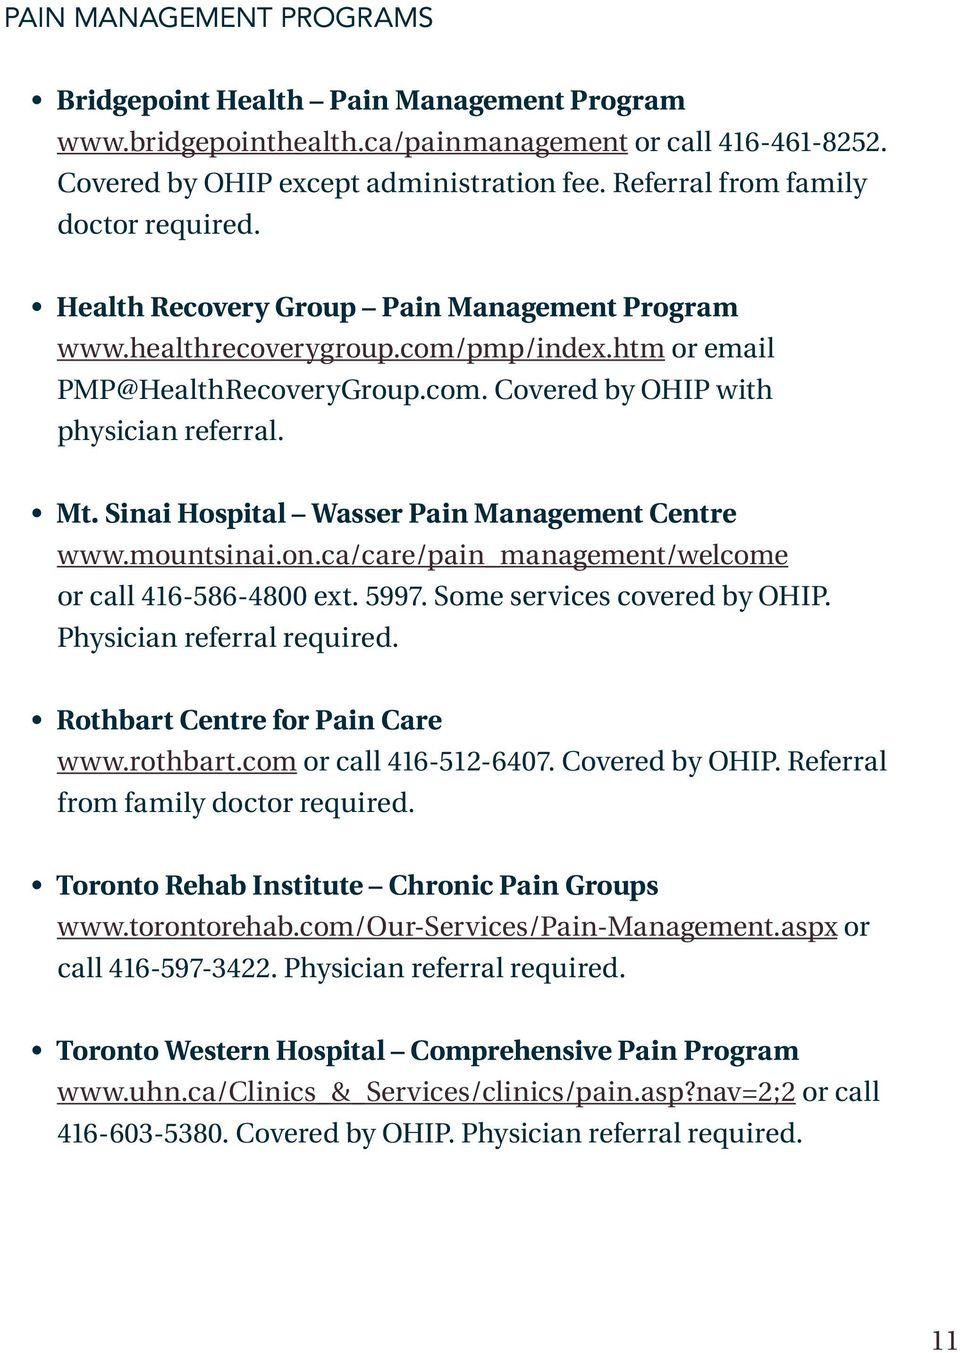 Mt. Sinai Hospital Wasser Pain Management Centre www.mountsinai.on.ca/care/pain_management/welcome or call 416-586-4800 ext. 5997. Some services covered by OHIP. Physician referral required.